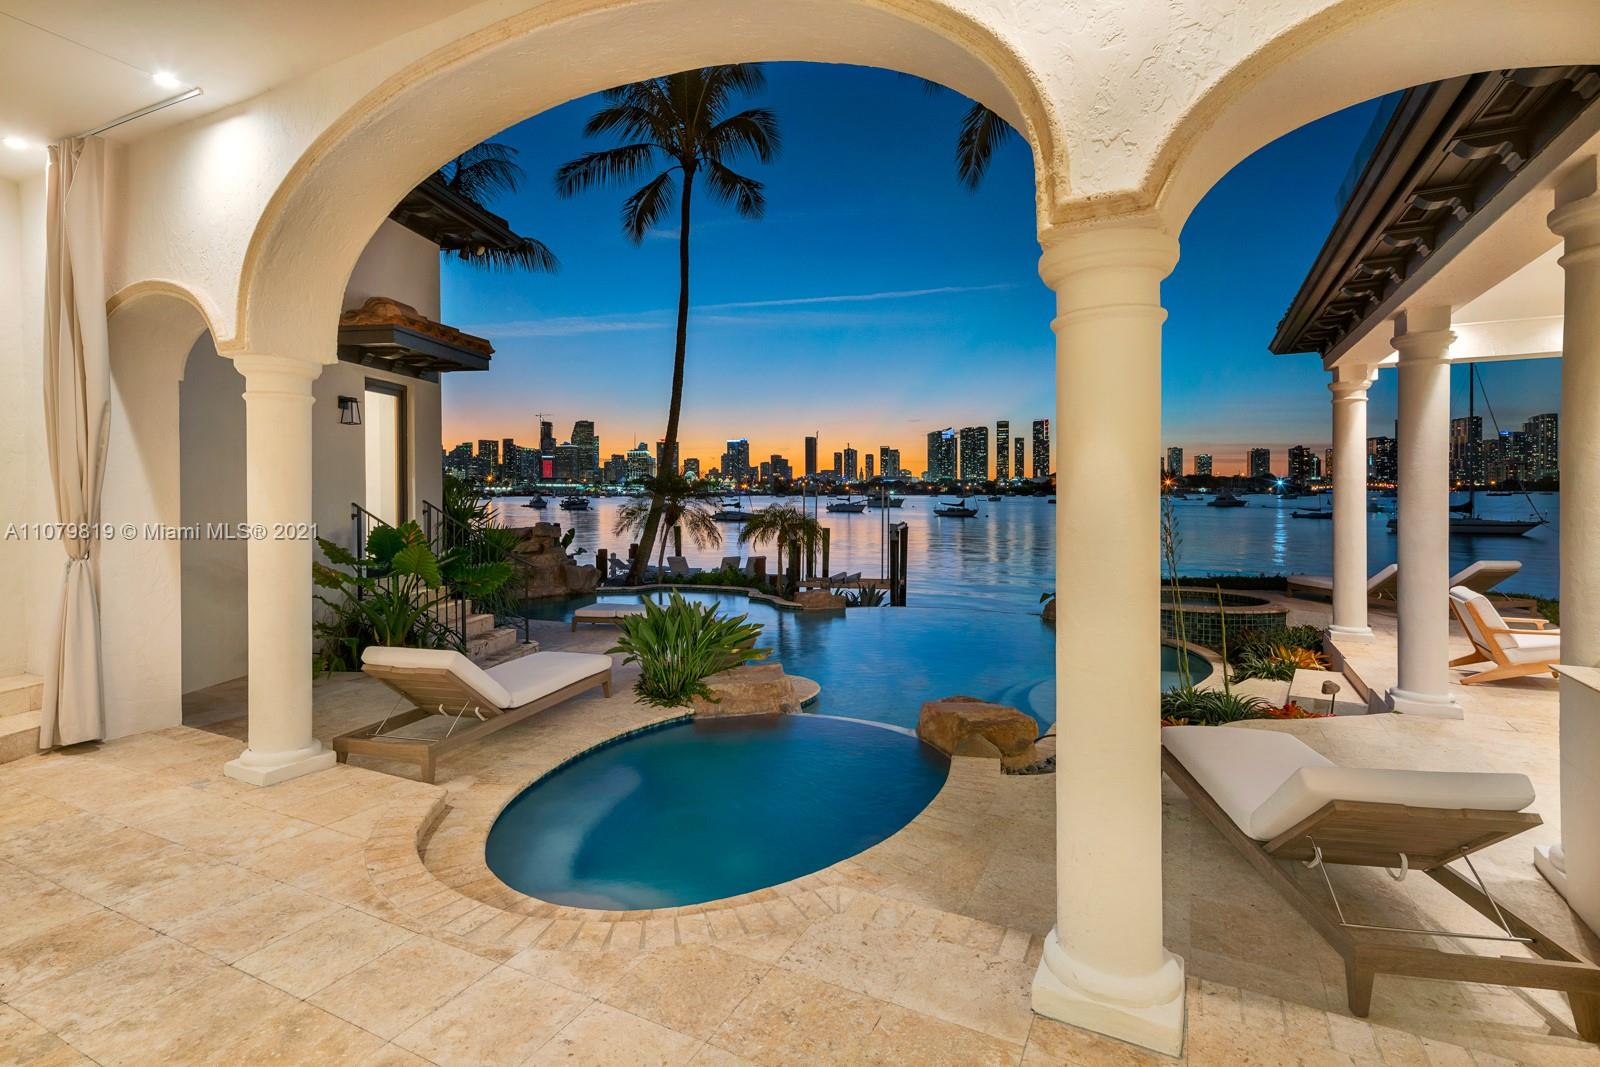 This one-of-a-kind Mediterranean estate is located on one of the most sought after plots on Hibiscus Island. The residence offers stunning panoramic views of ocean sunsets and the Miami skyline. The custom estate comes with everything expected from a luxury home such as superior construction, open spaces, top of the line finishes and spectacular views. The private dock w/ boat lift shares more than 125 feet of water frontage. The island is Police guarded and offers a basketball court, tennis court and children's playground.